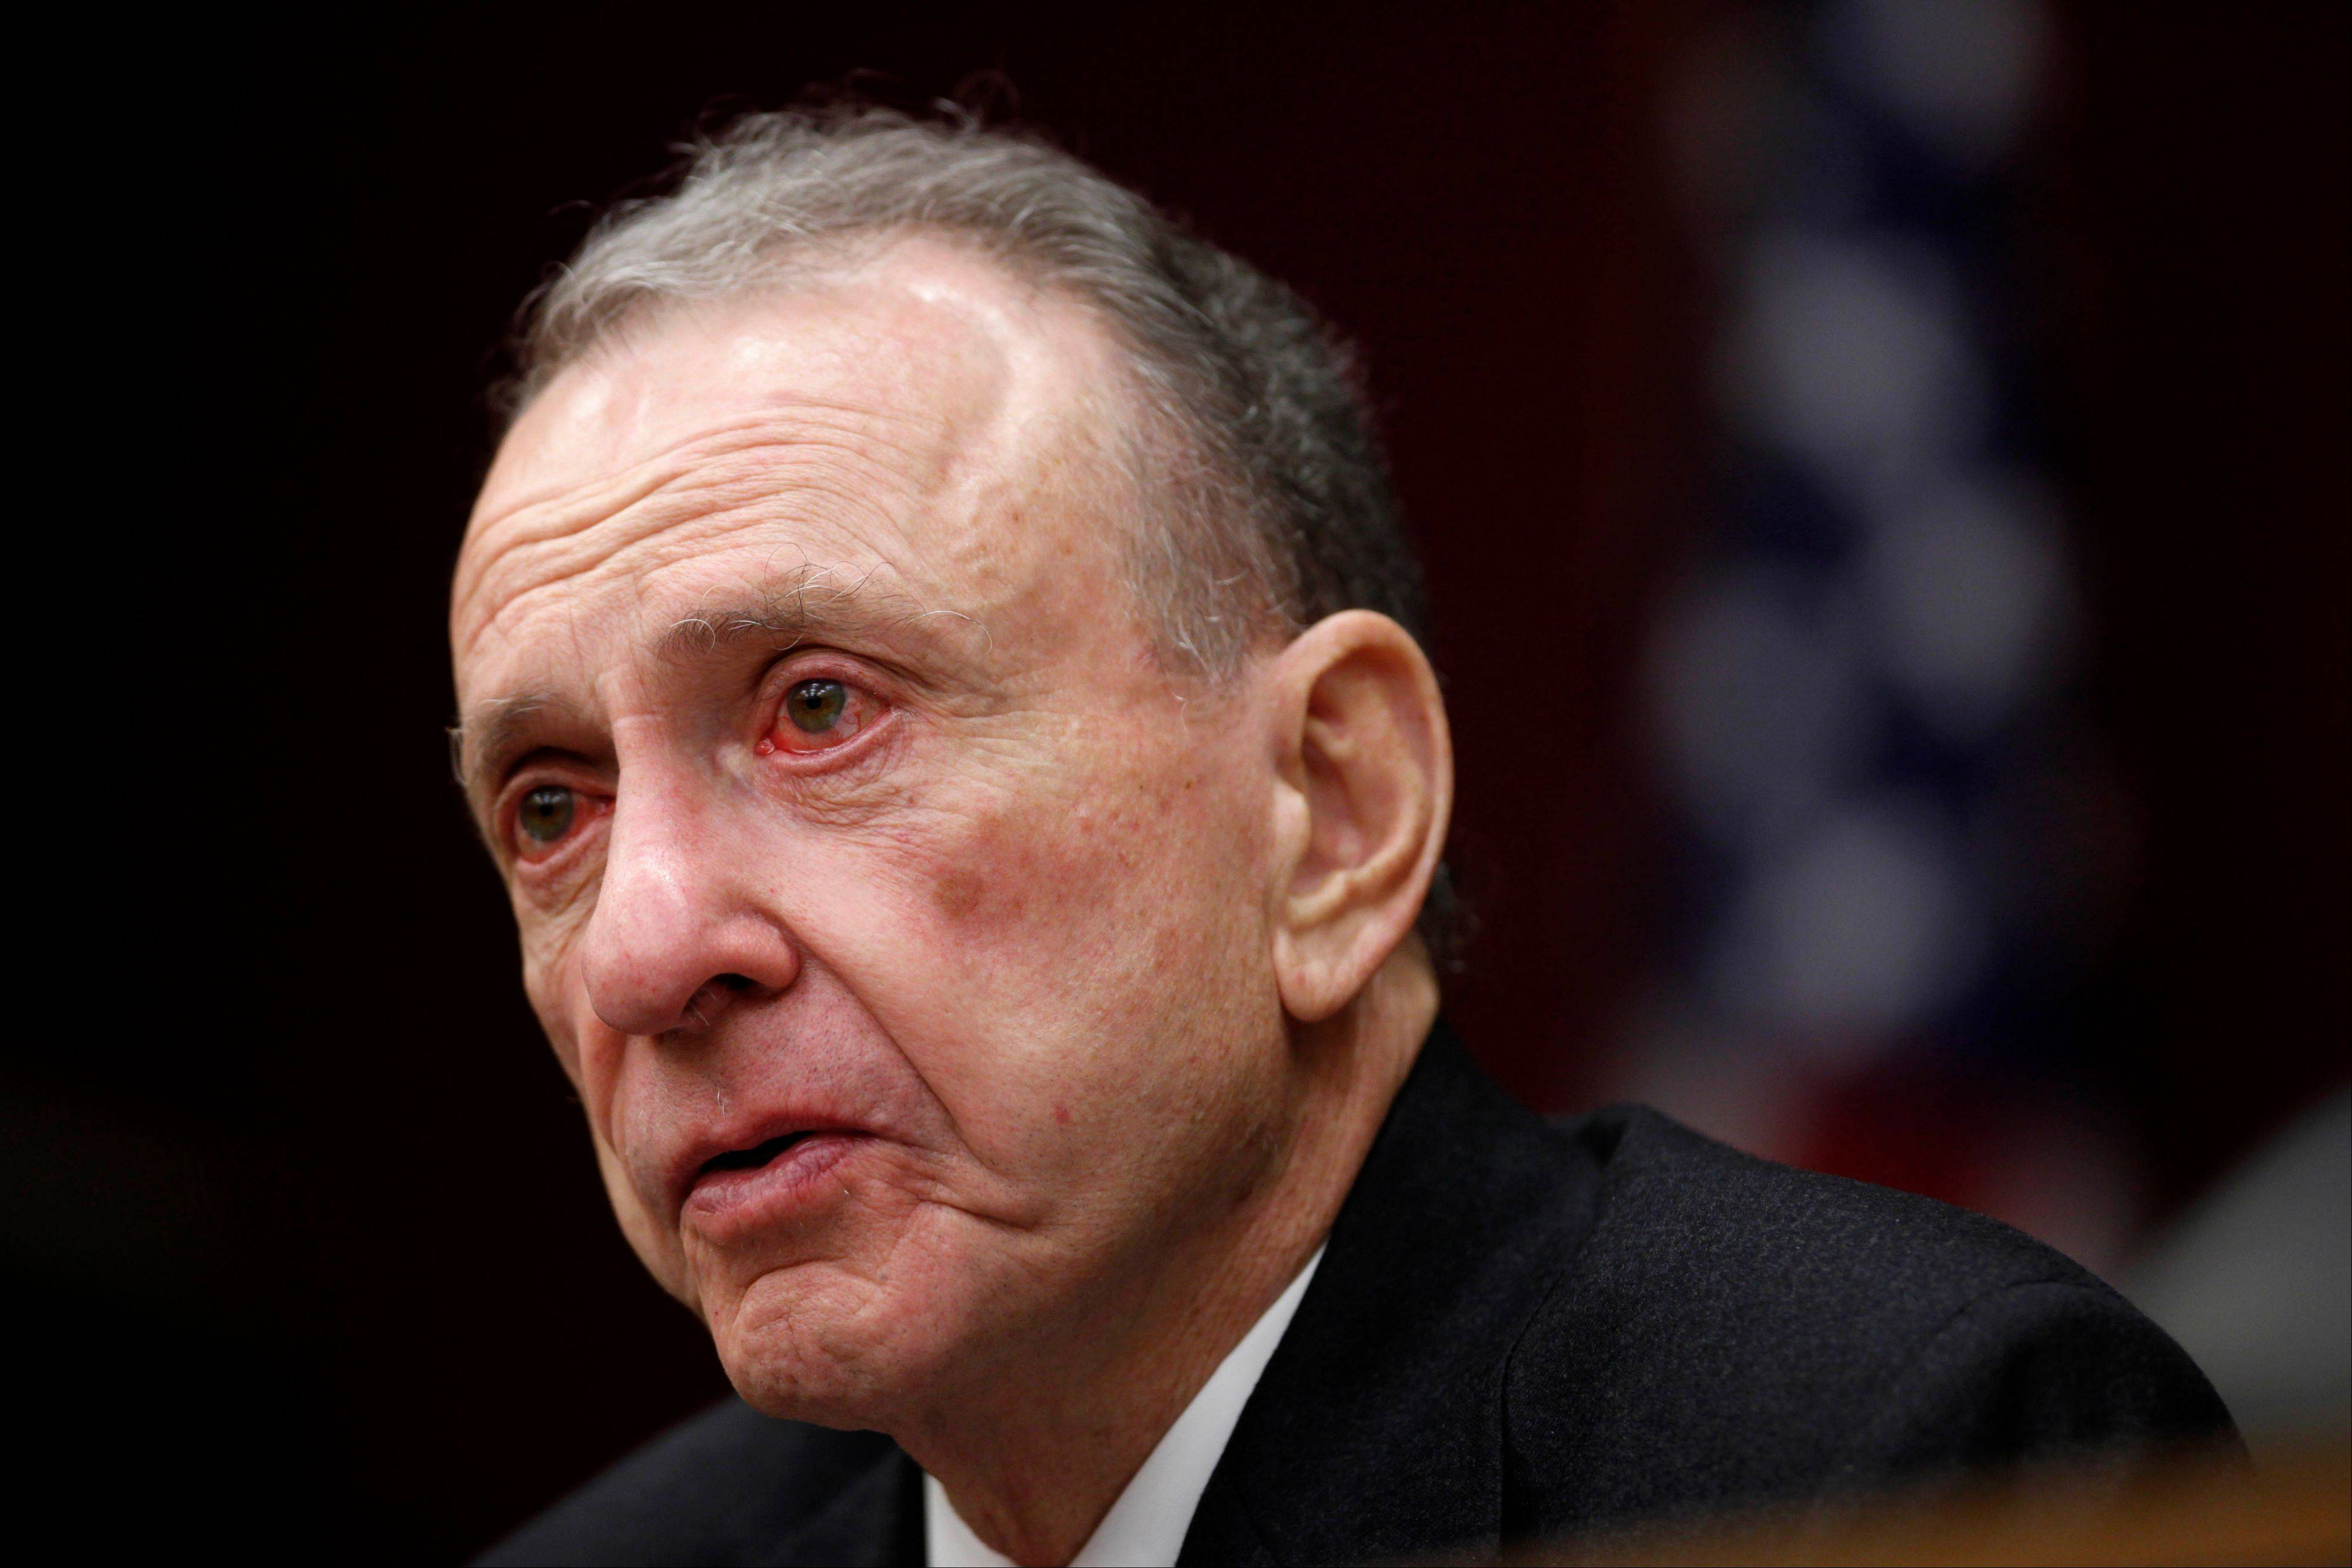 Democratic Pennsylvania Sen. Arlen Specter leads a Senate field hearing, in Philadelphia.